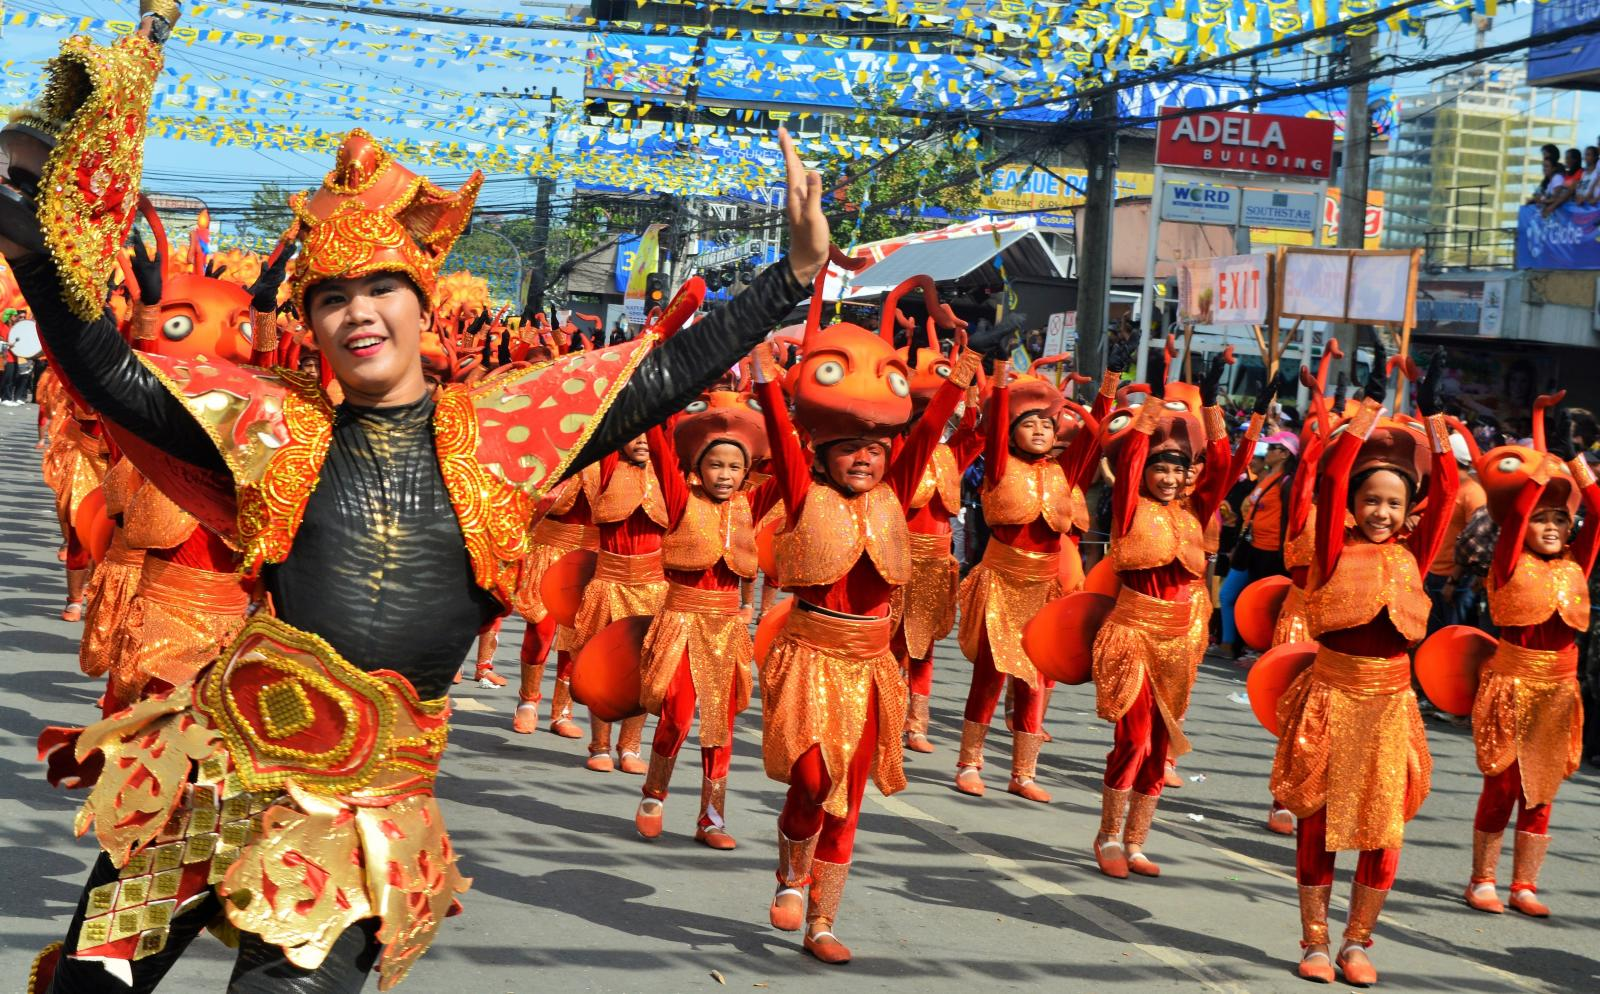 A volunteer studying English in the Philippines attends a local festival to learn about the culture.